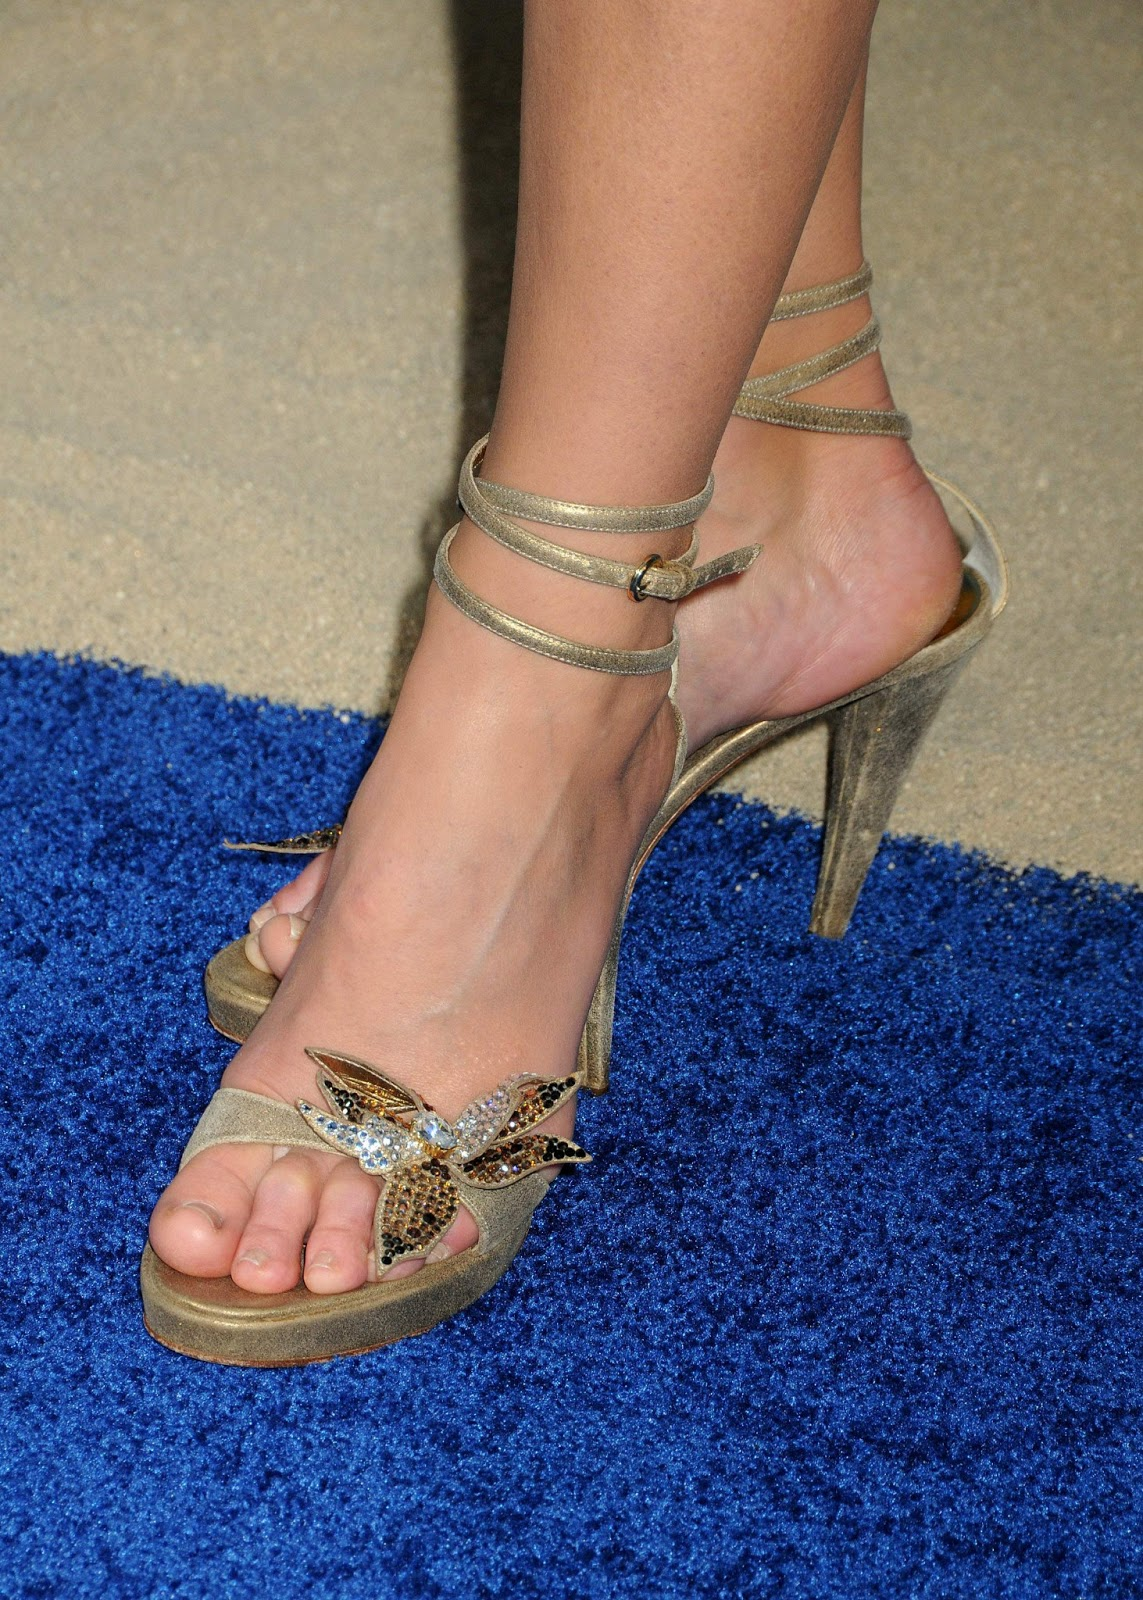 Emily Osment Feet and Toes Images & Pictures - Findpik